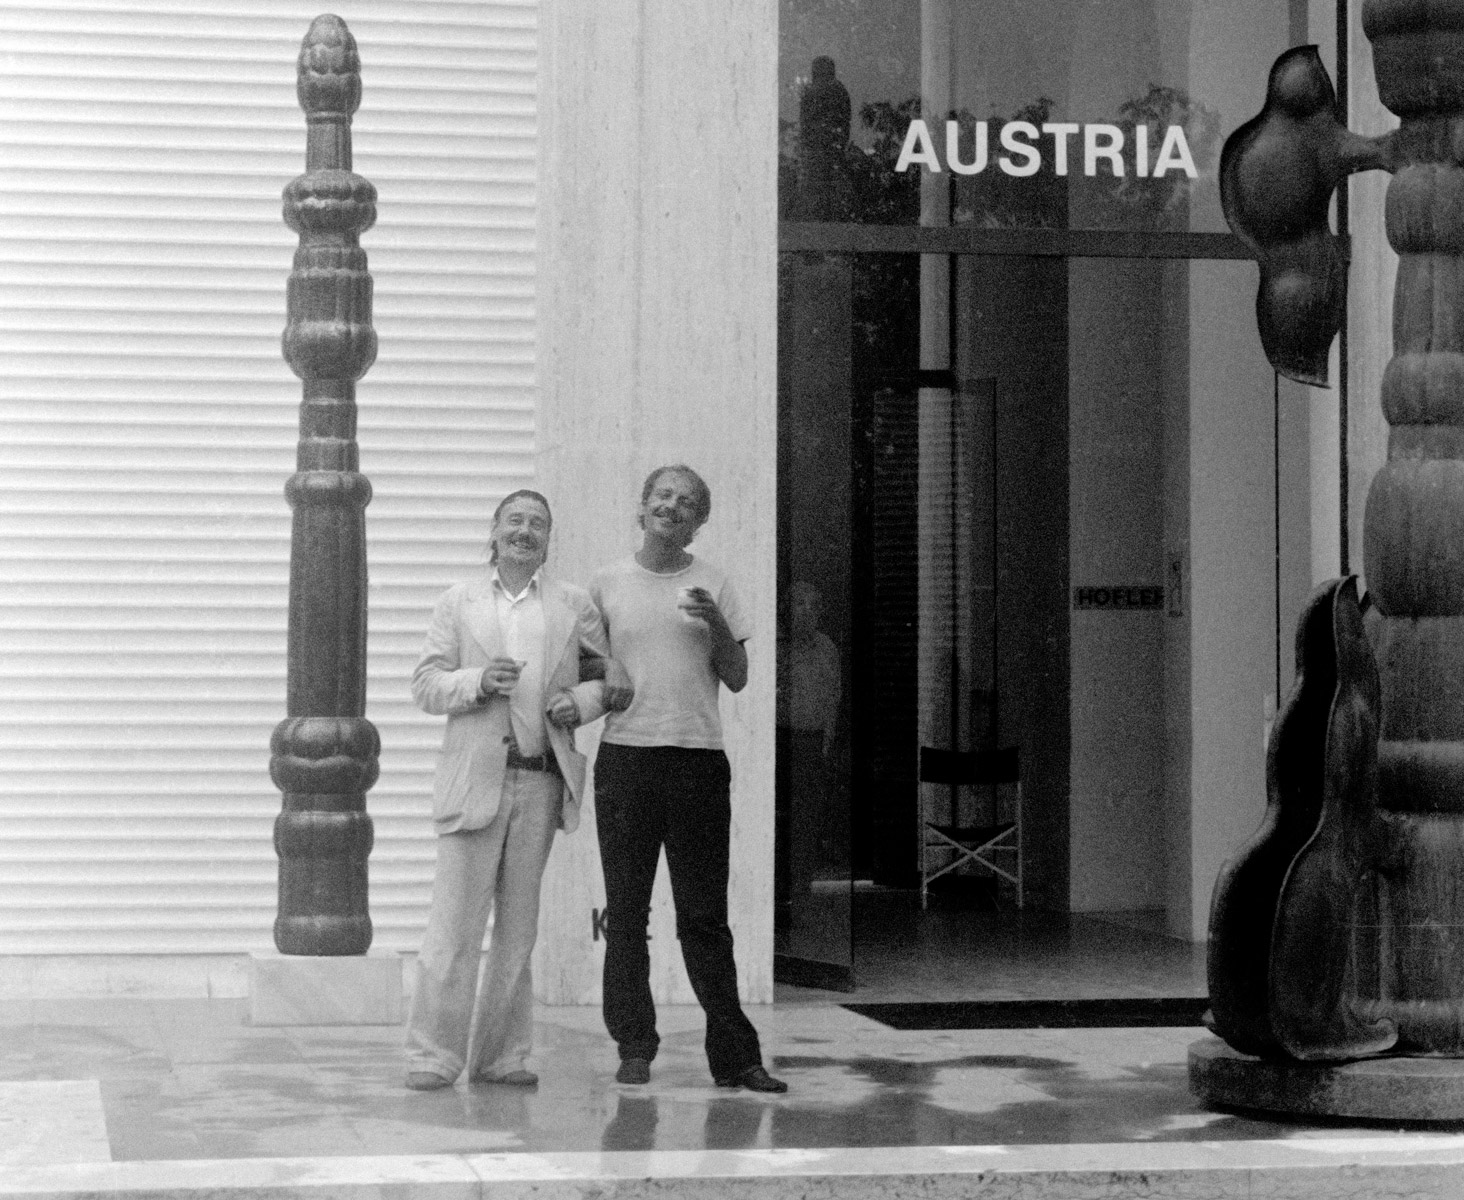 This photo (© Freddie Jellinek) shows 29 year old Franz West together with his older brother Otto Kobalek at the Austrian Pavilion 1976